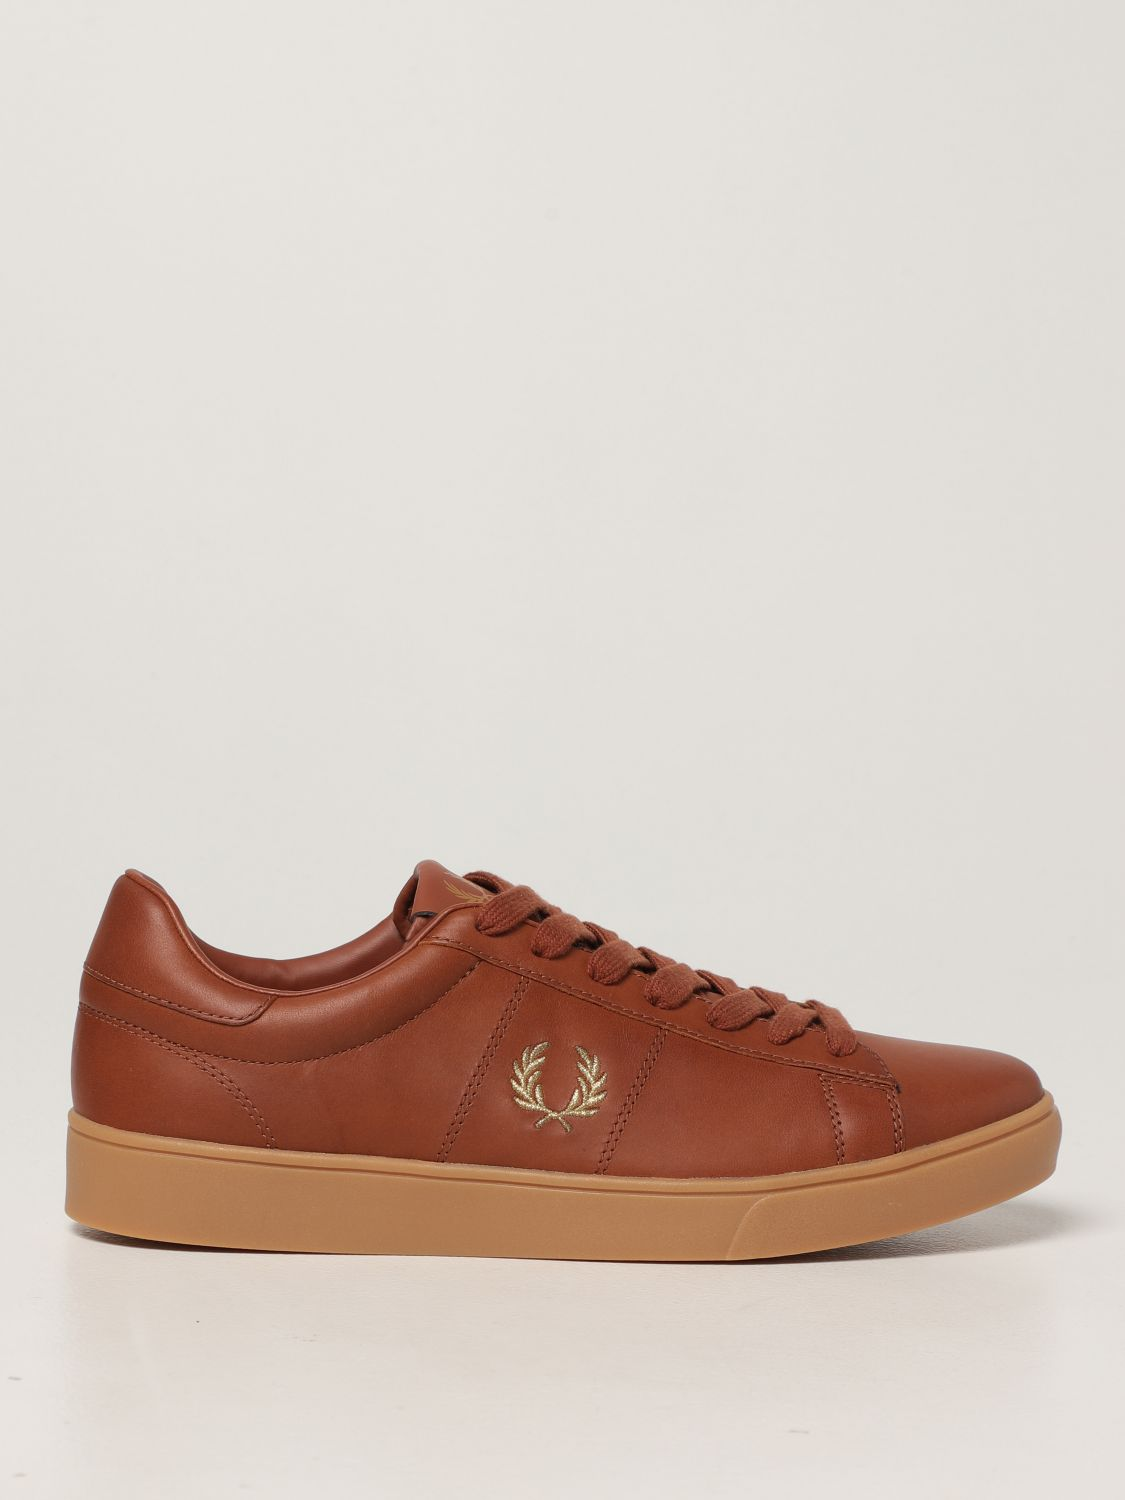 Zapatillas Fred Perry: Zapatillas hombre Fred Perry bronce 1